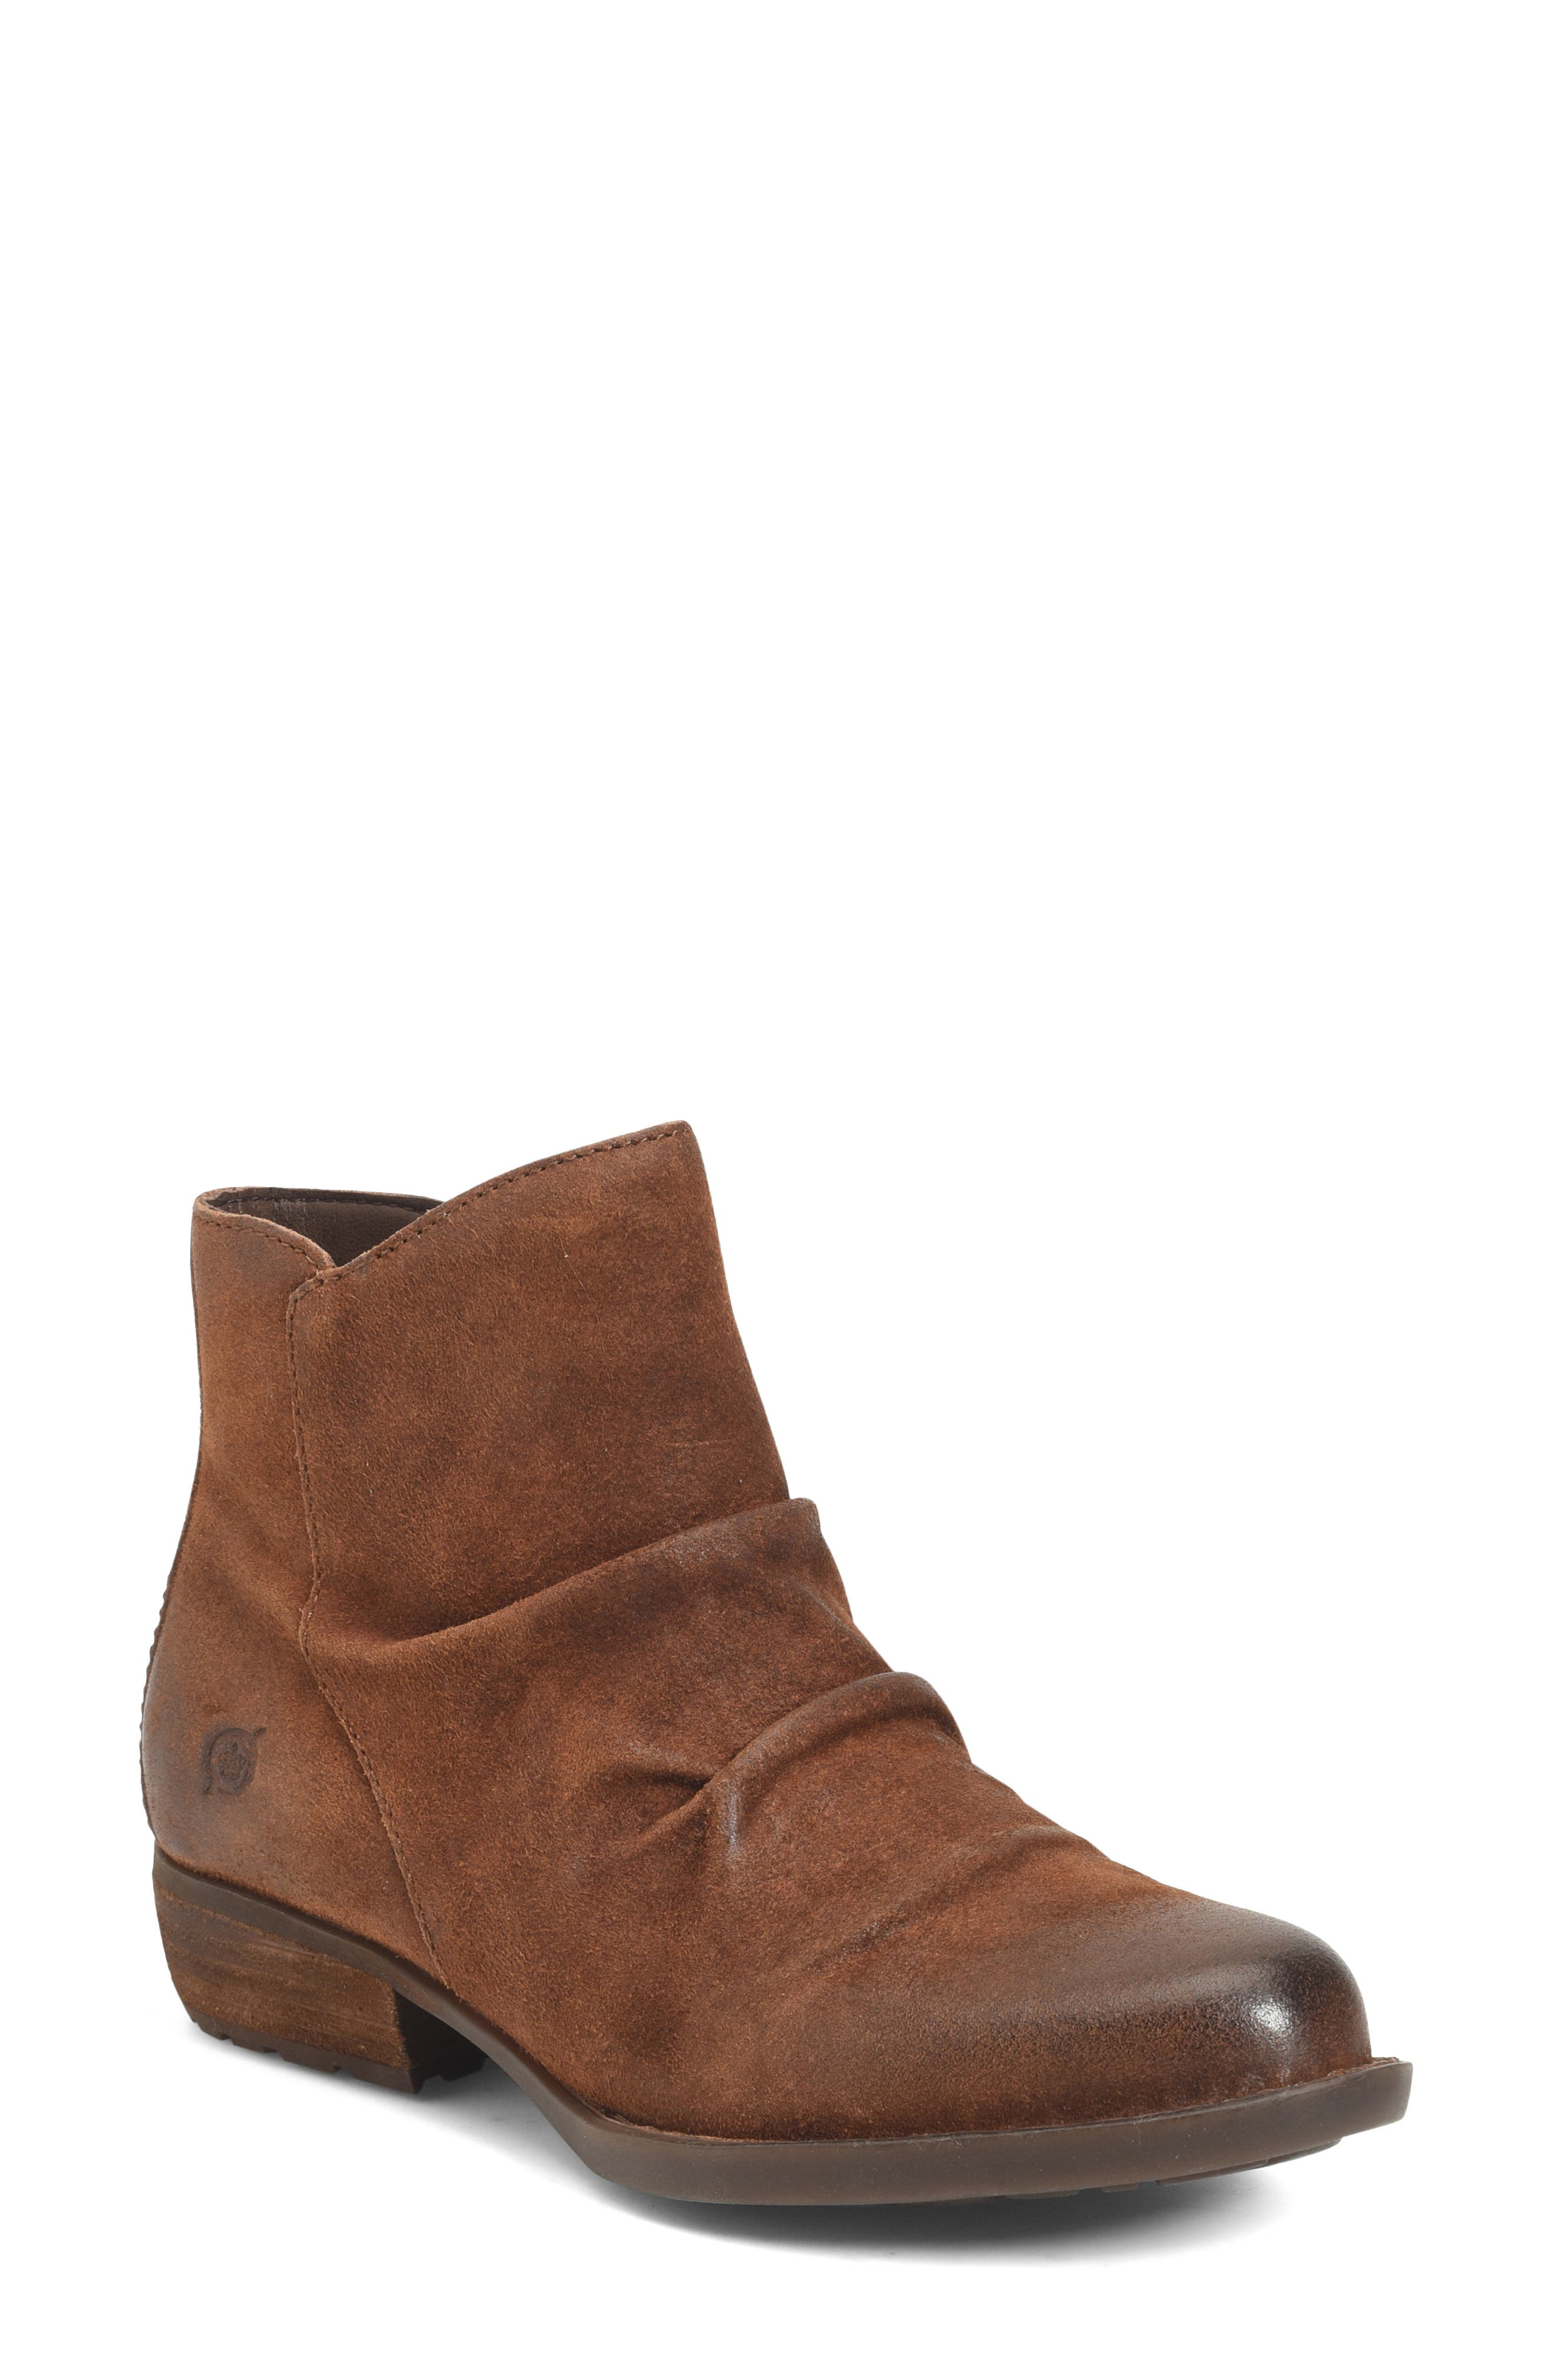 Women's B?rn Falco Ruched Bootie